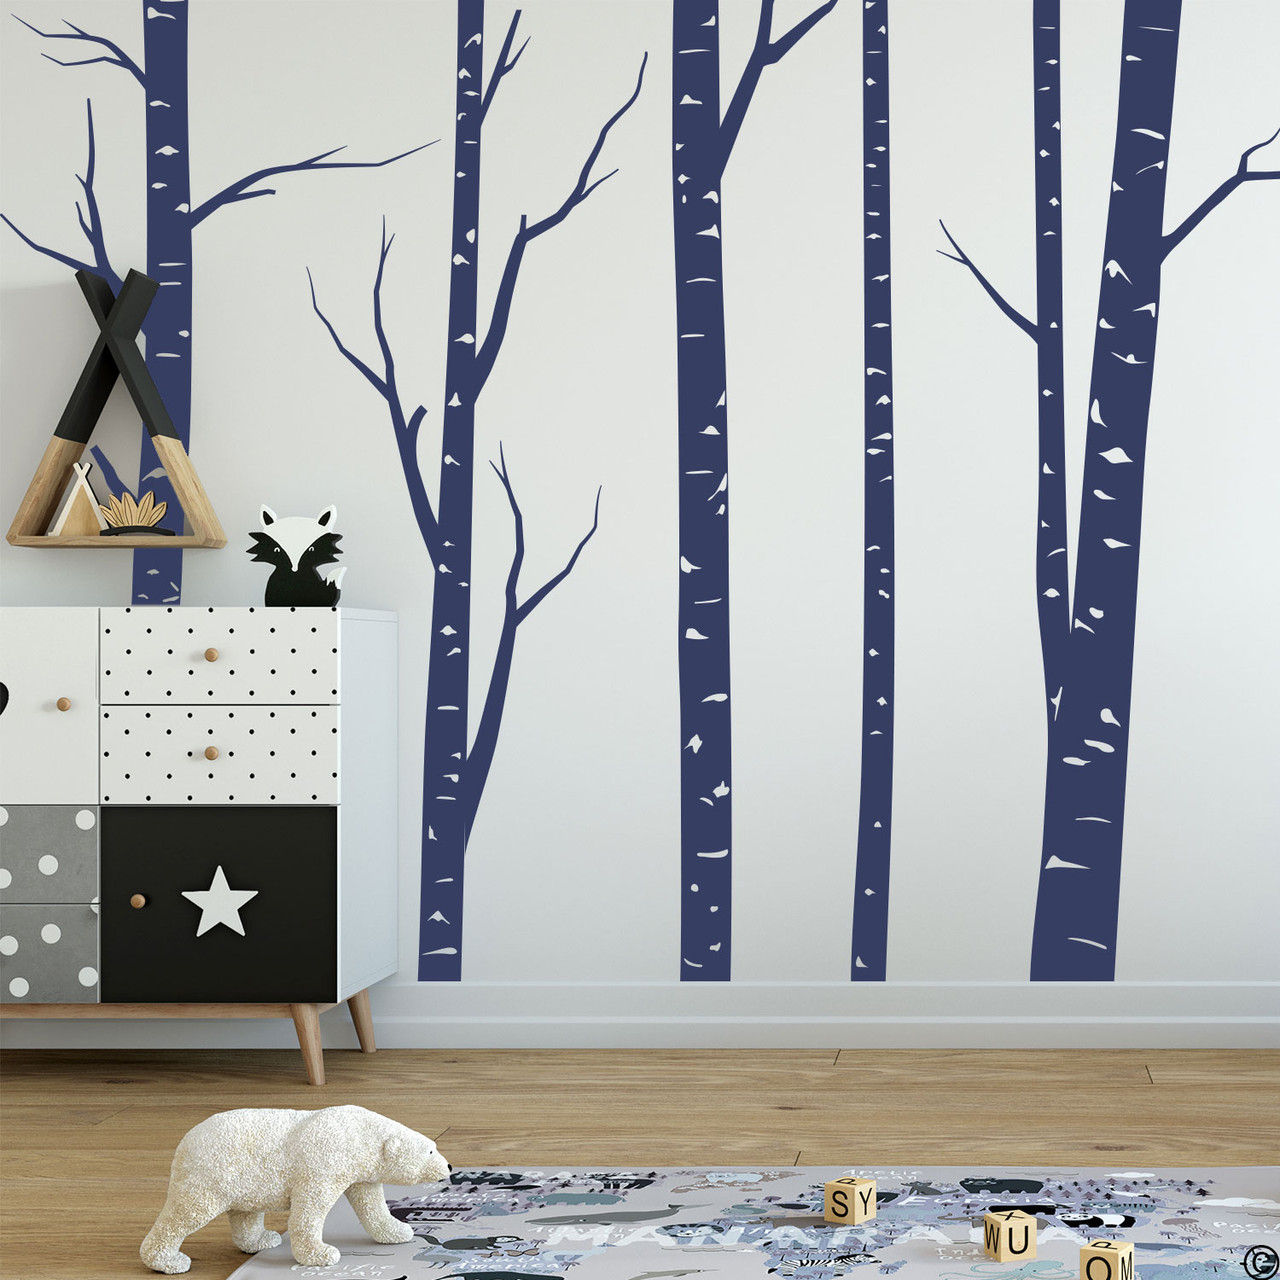 Aspen forest wall decal mural in dark blue vinyl color.